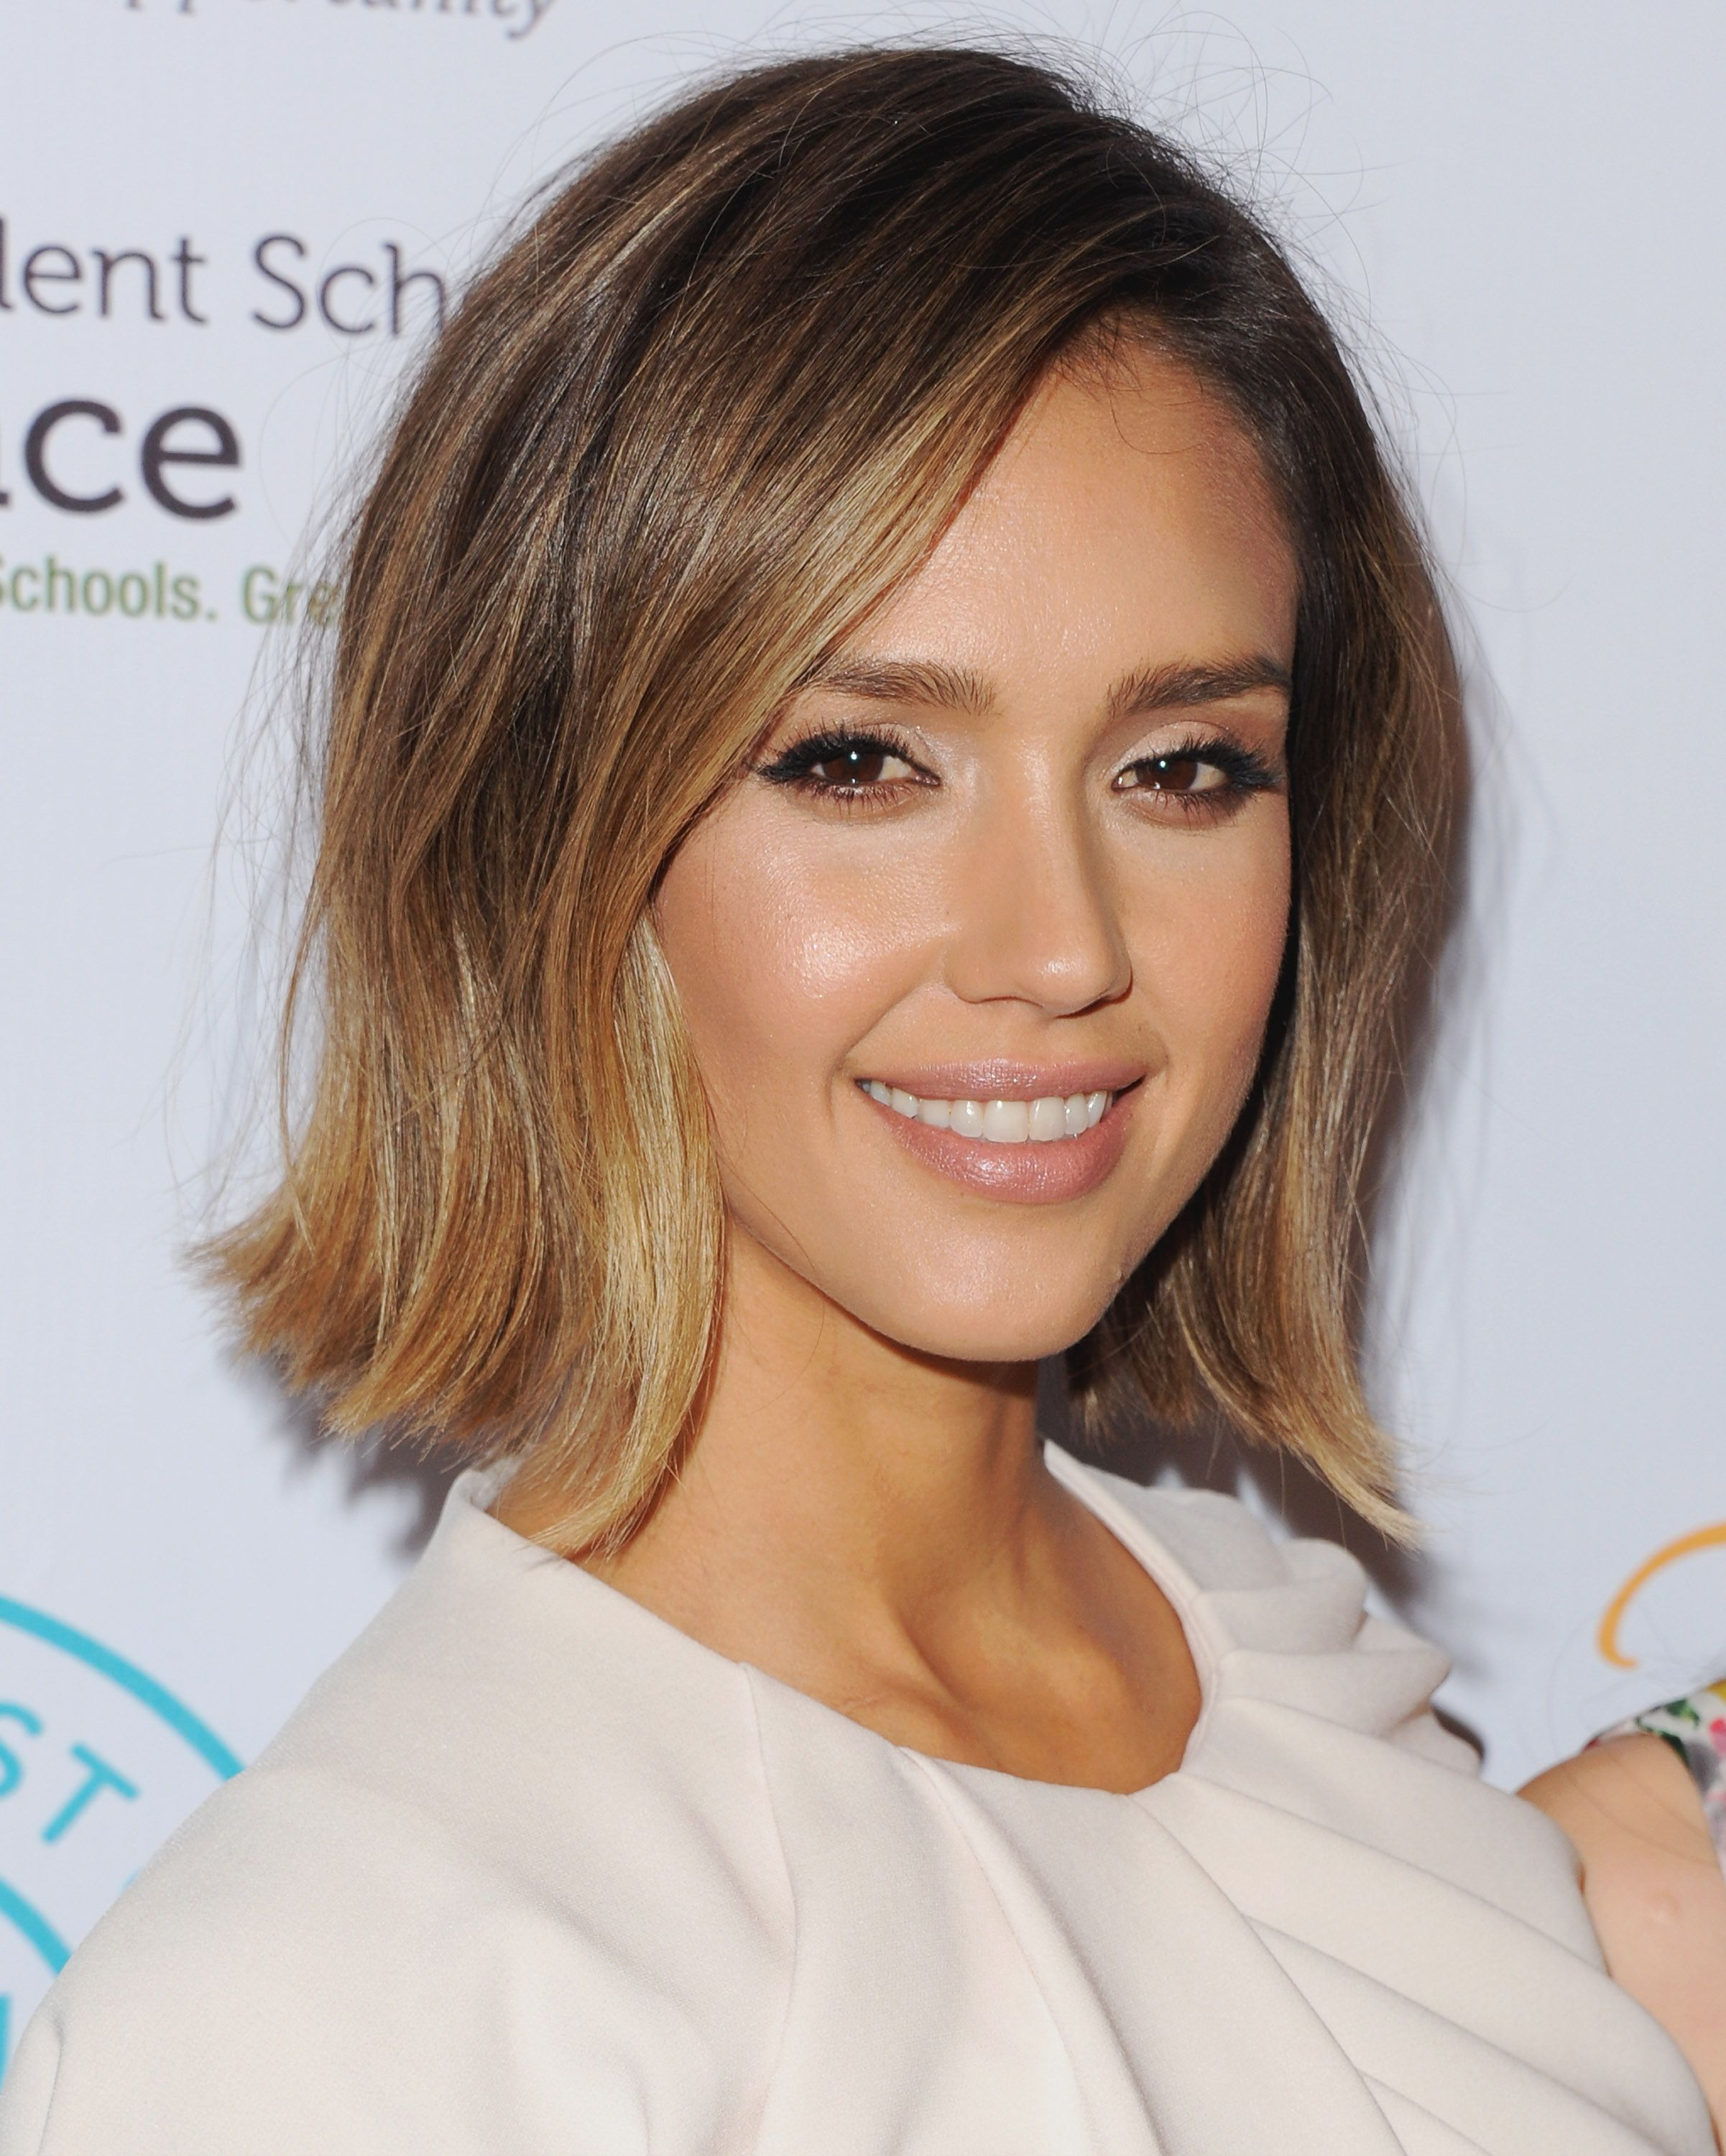 40 spectacular blunt bob hairstyles the right hairstyles - Jessica Alba S Blunt New Bob Is The Ultimate Hot Mom Haircut